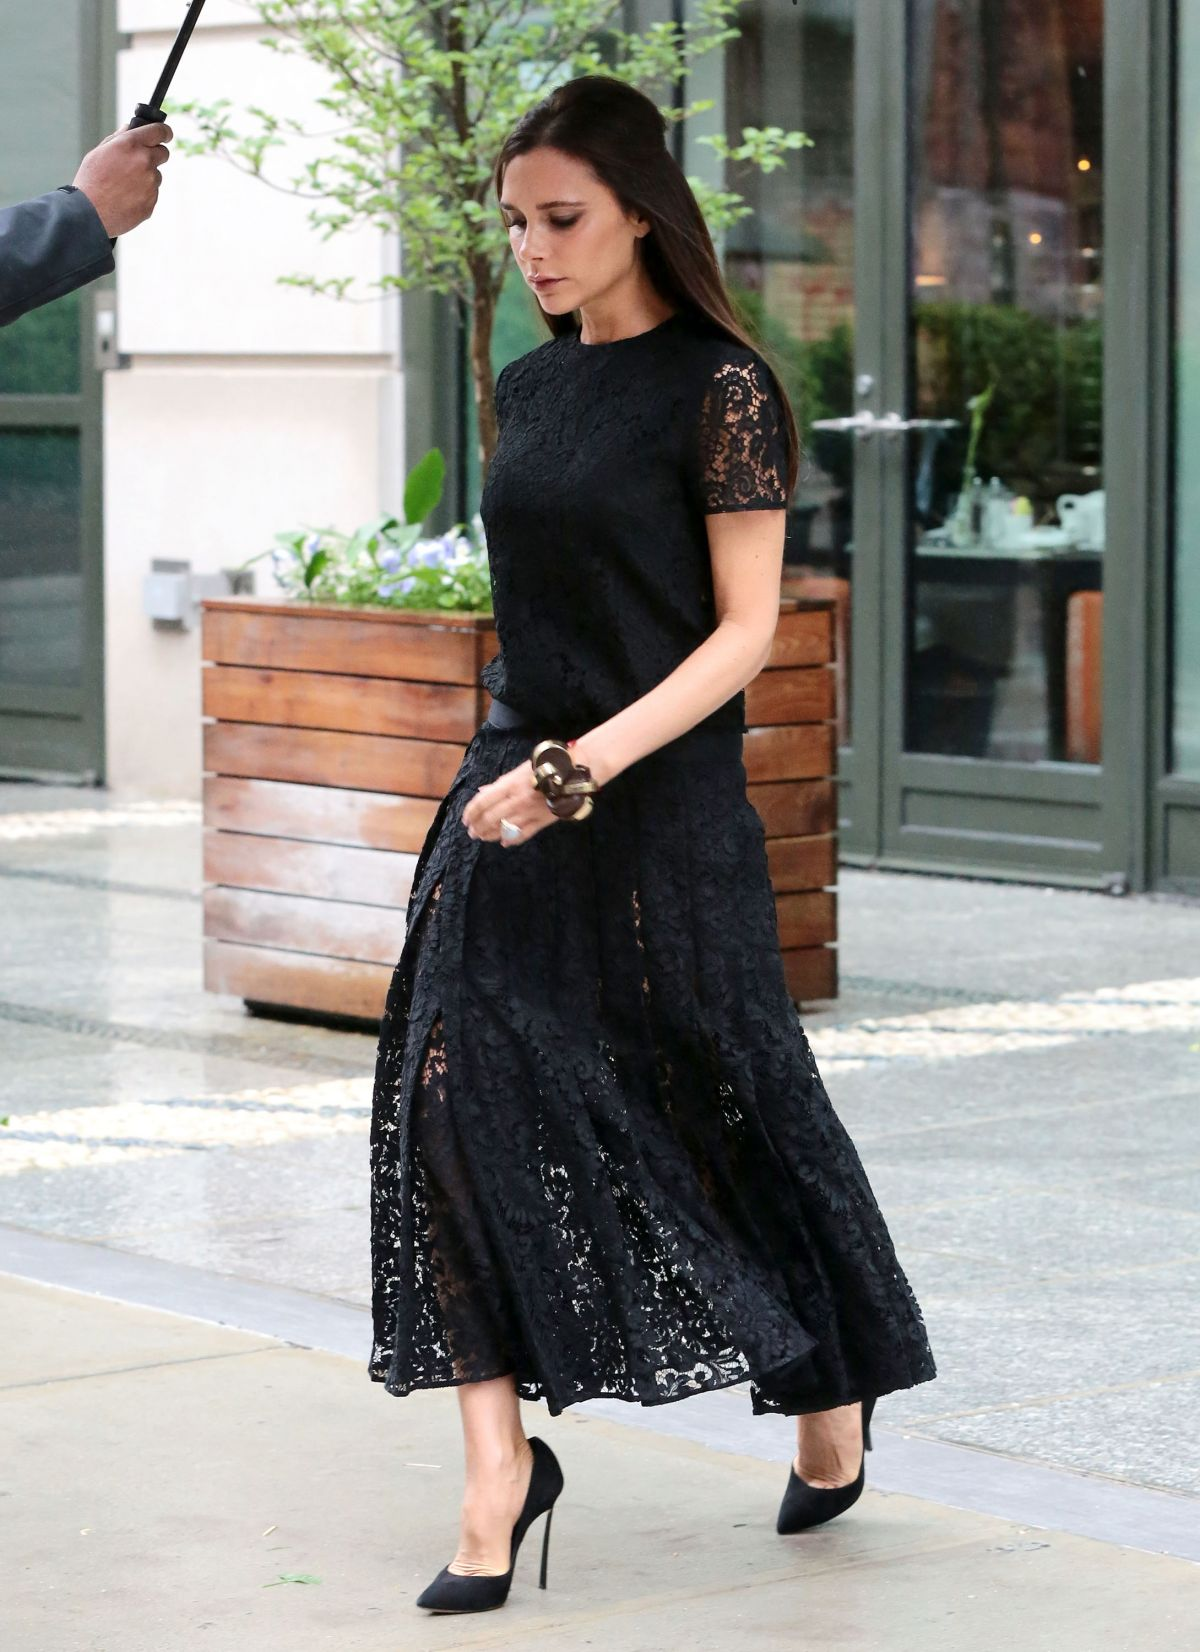 Victoria Beckham In Victoria Beckham Out In New York City Fashionsizzle